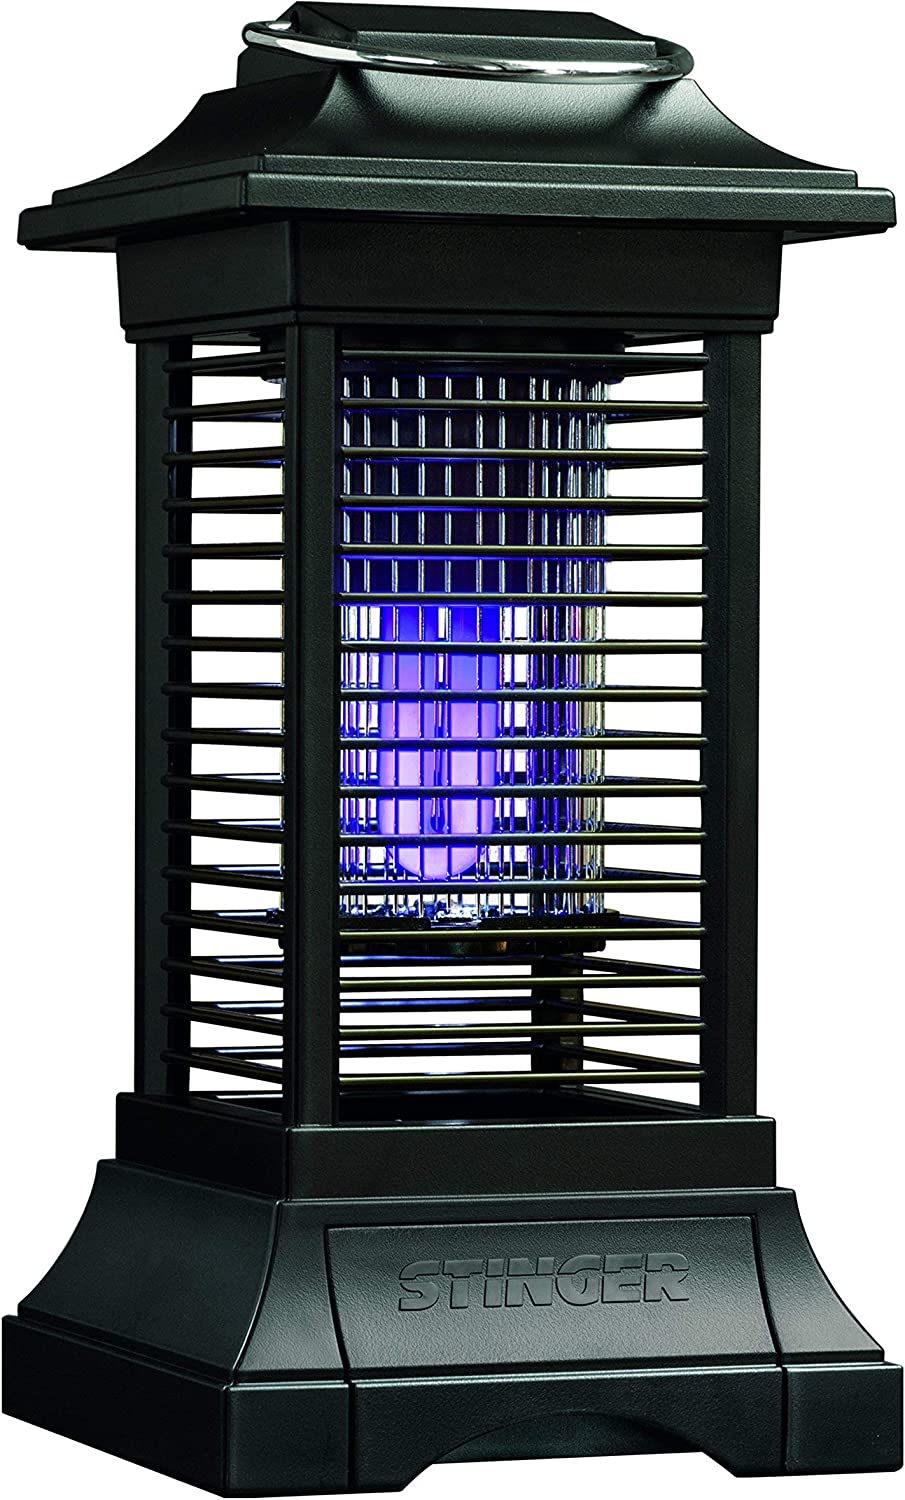 Stinger Cordless Rechargable Insect Zapper, Black (Renewed)